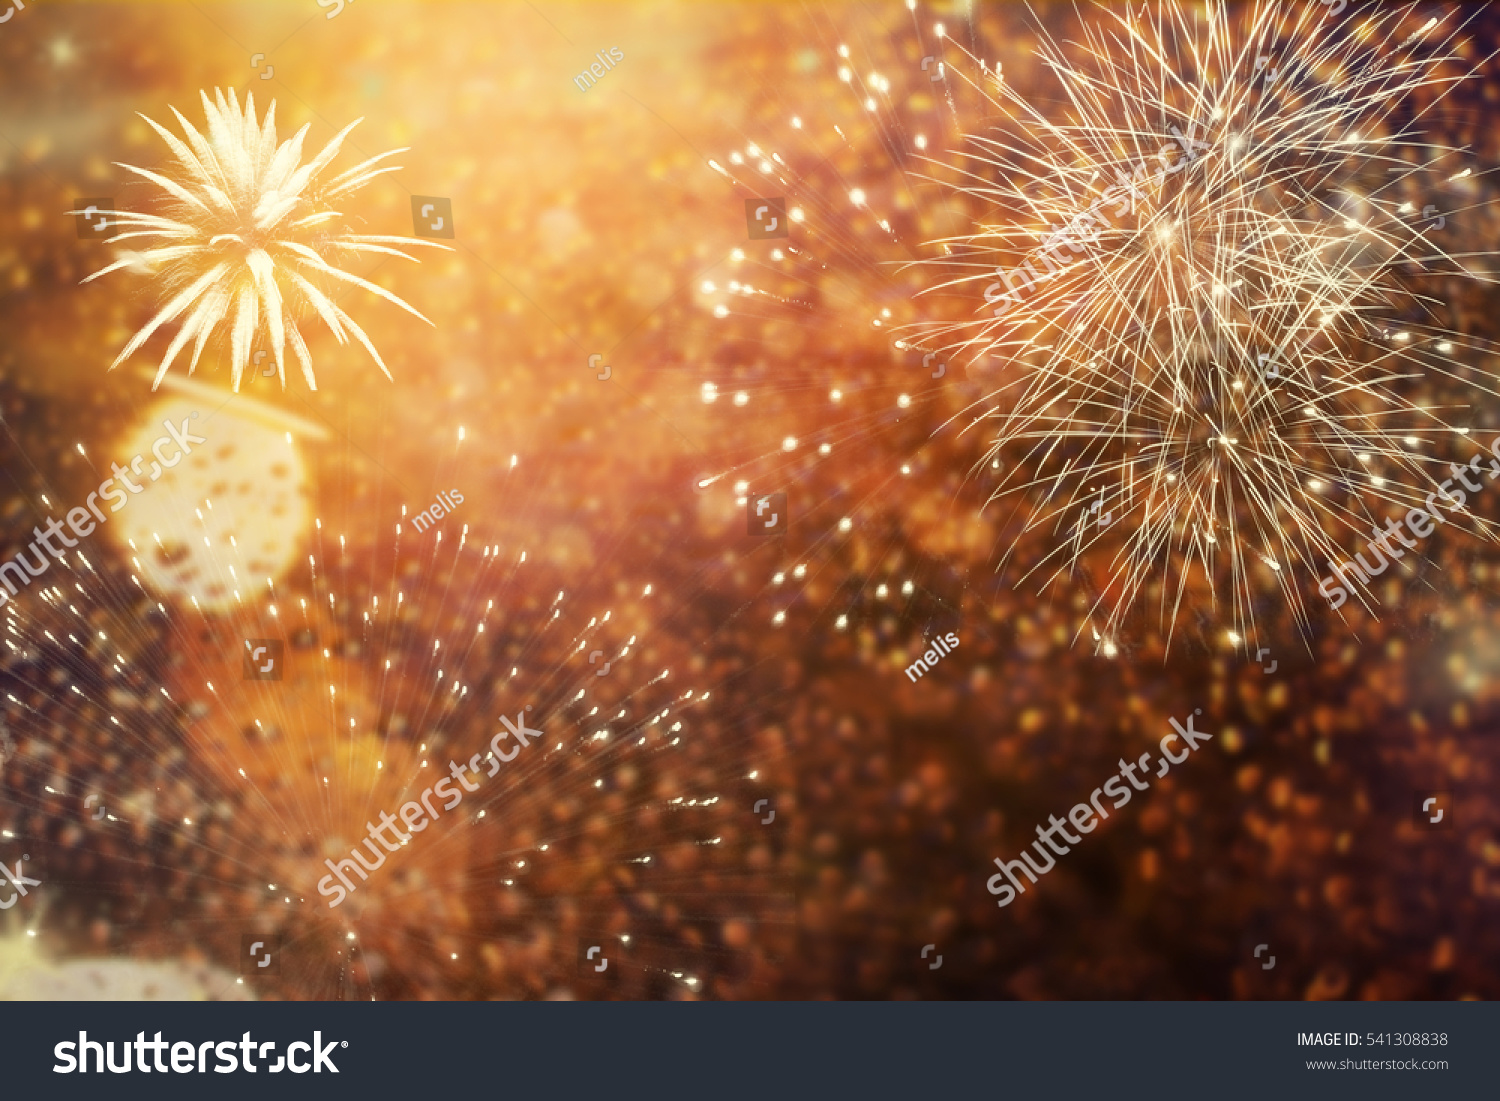 abstract holiday background Fireworks at New Year and copy space